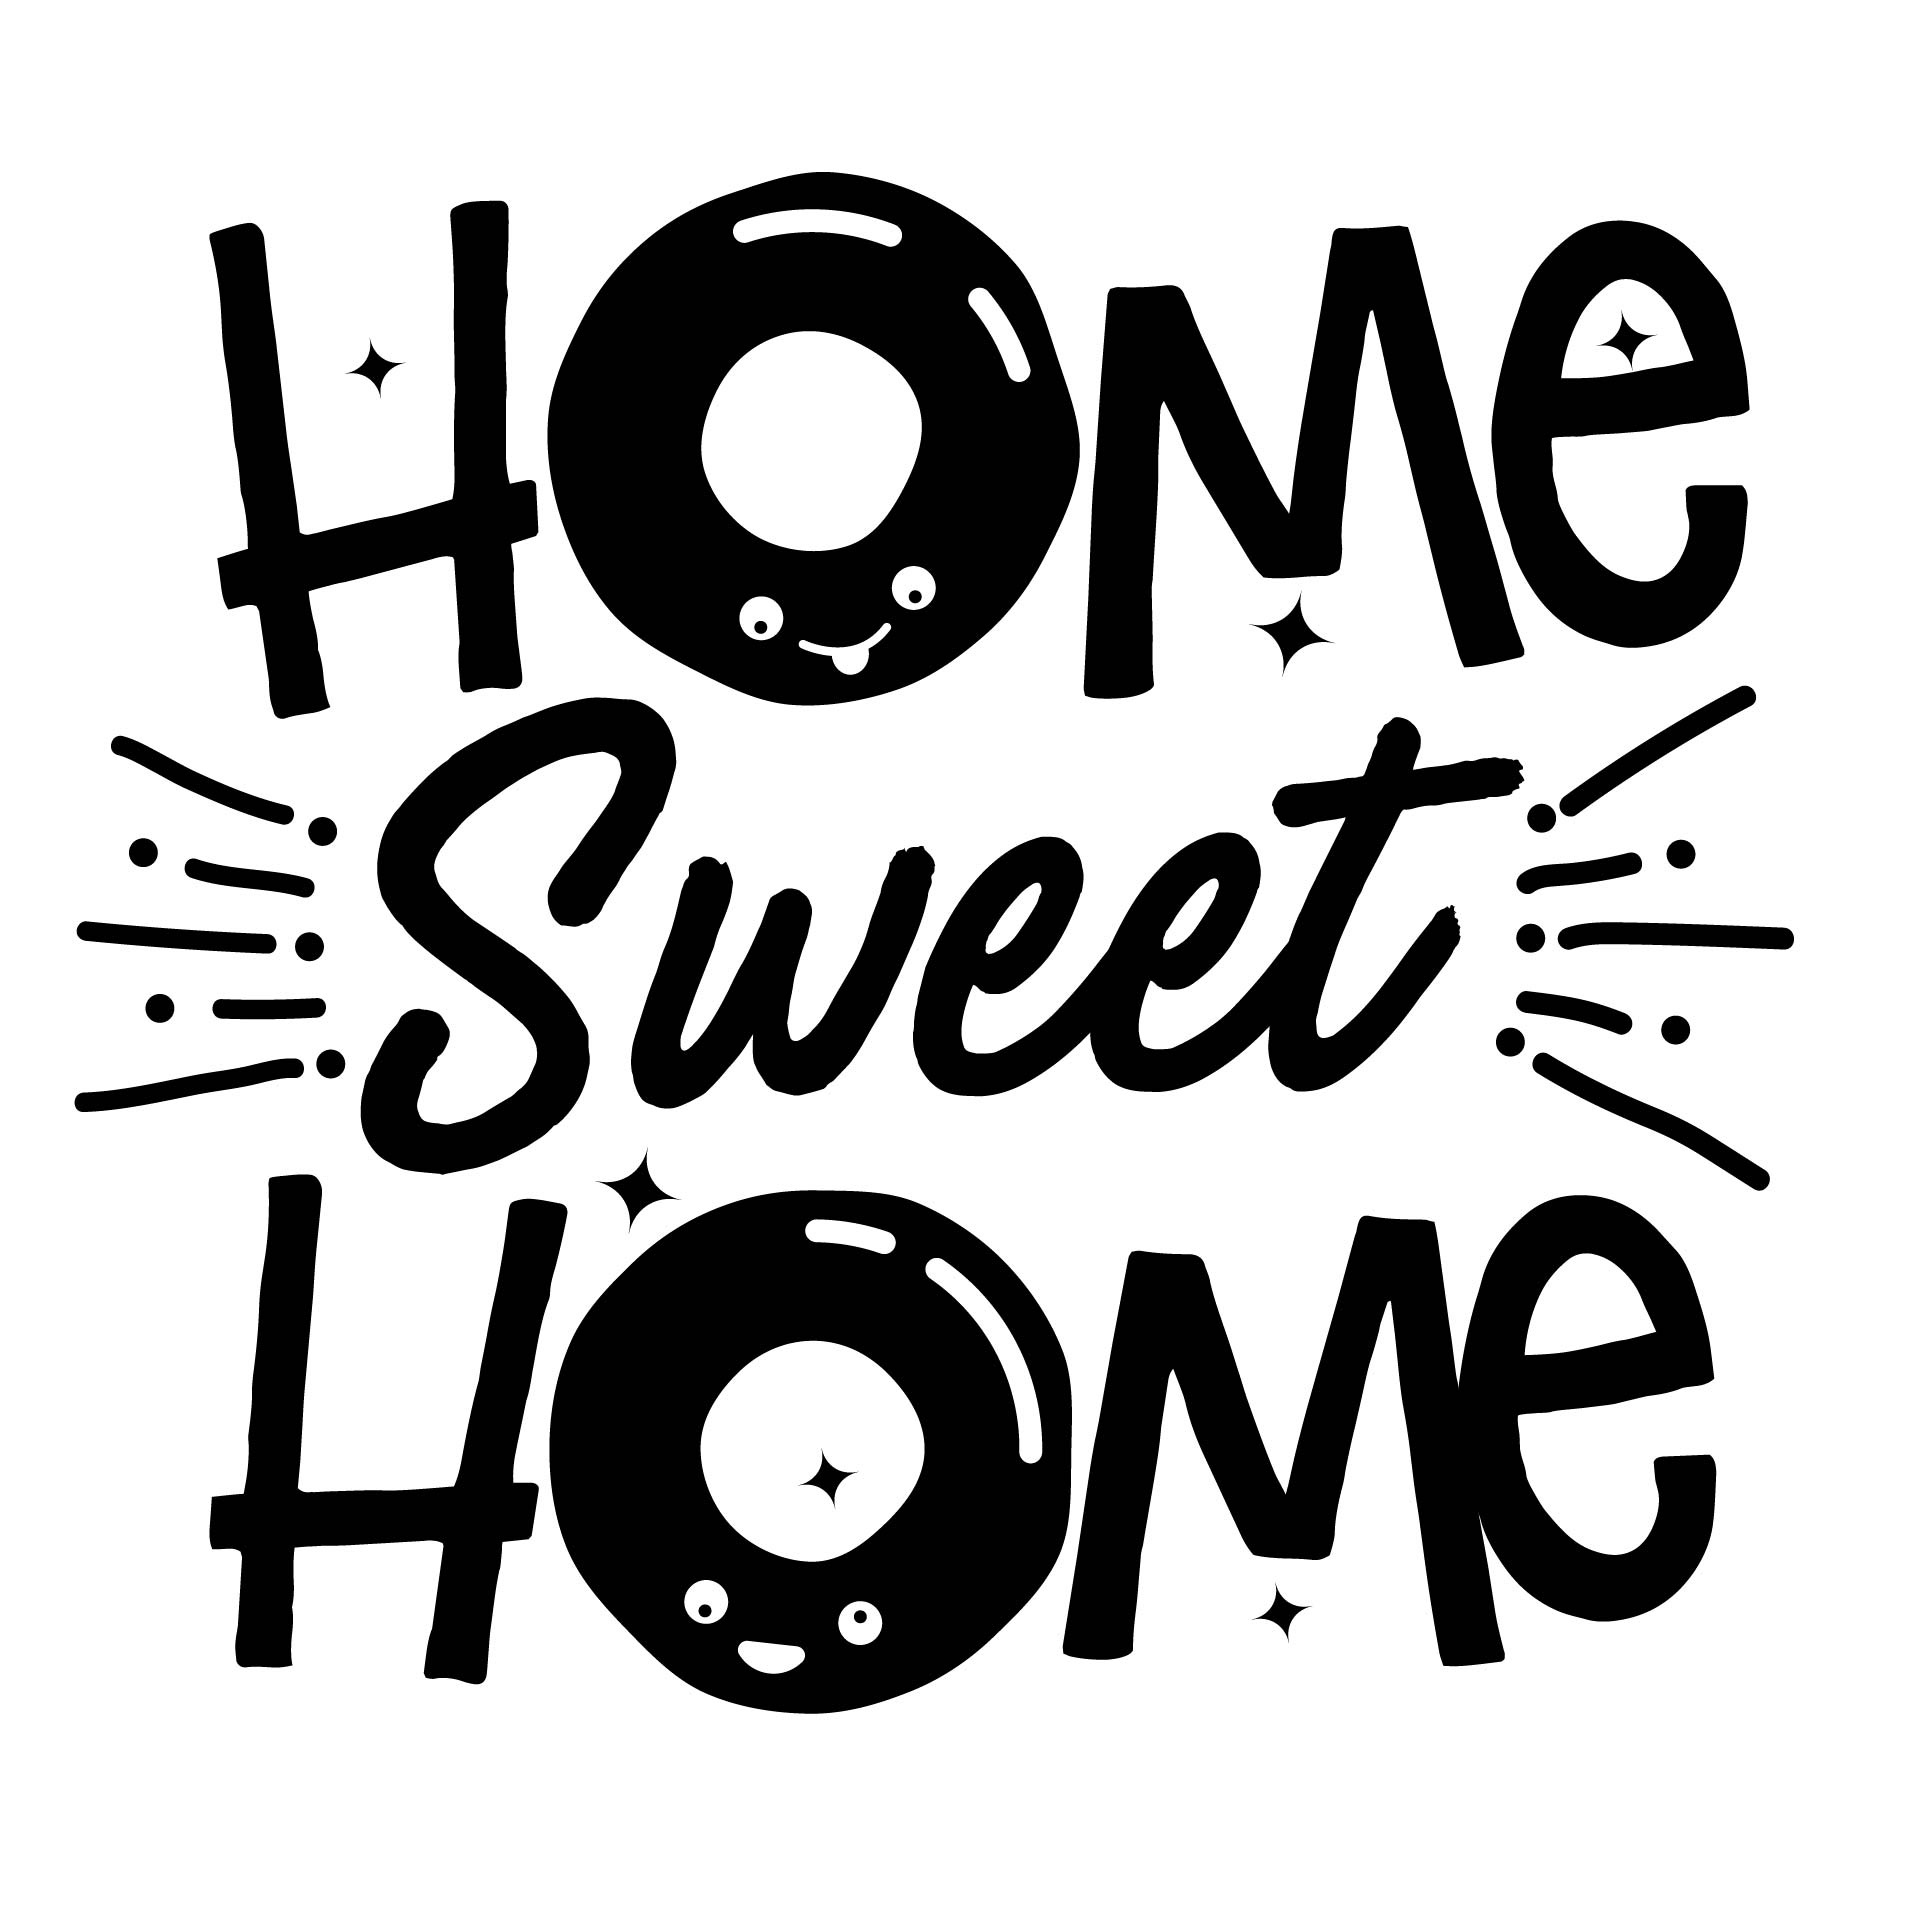 Home Sweet Home Design Graphic by davidrockdesign - Creative Fabrica